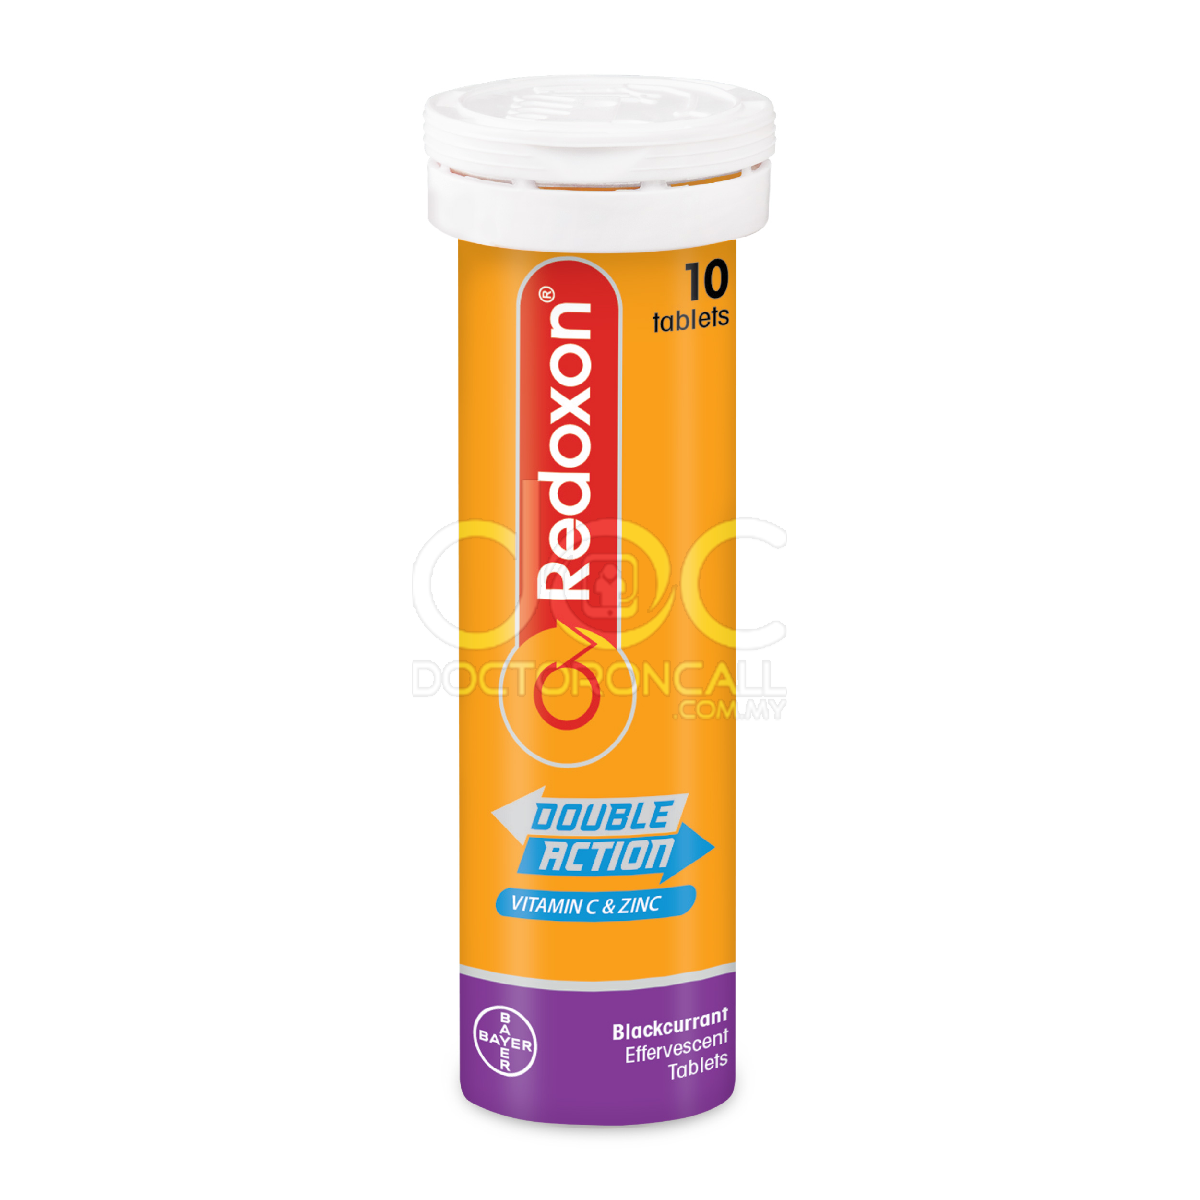 Redoxon Double Action Vitamin C+Zinc Effervescent Tablet (Blackcurrant), 10's - DoctorOnCall